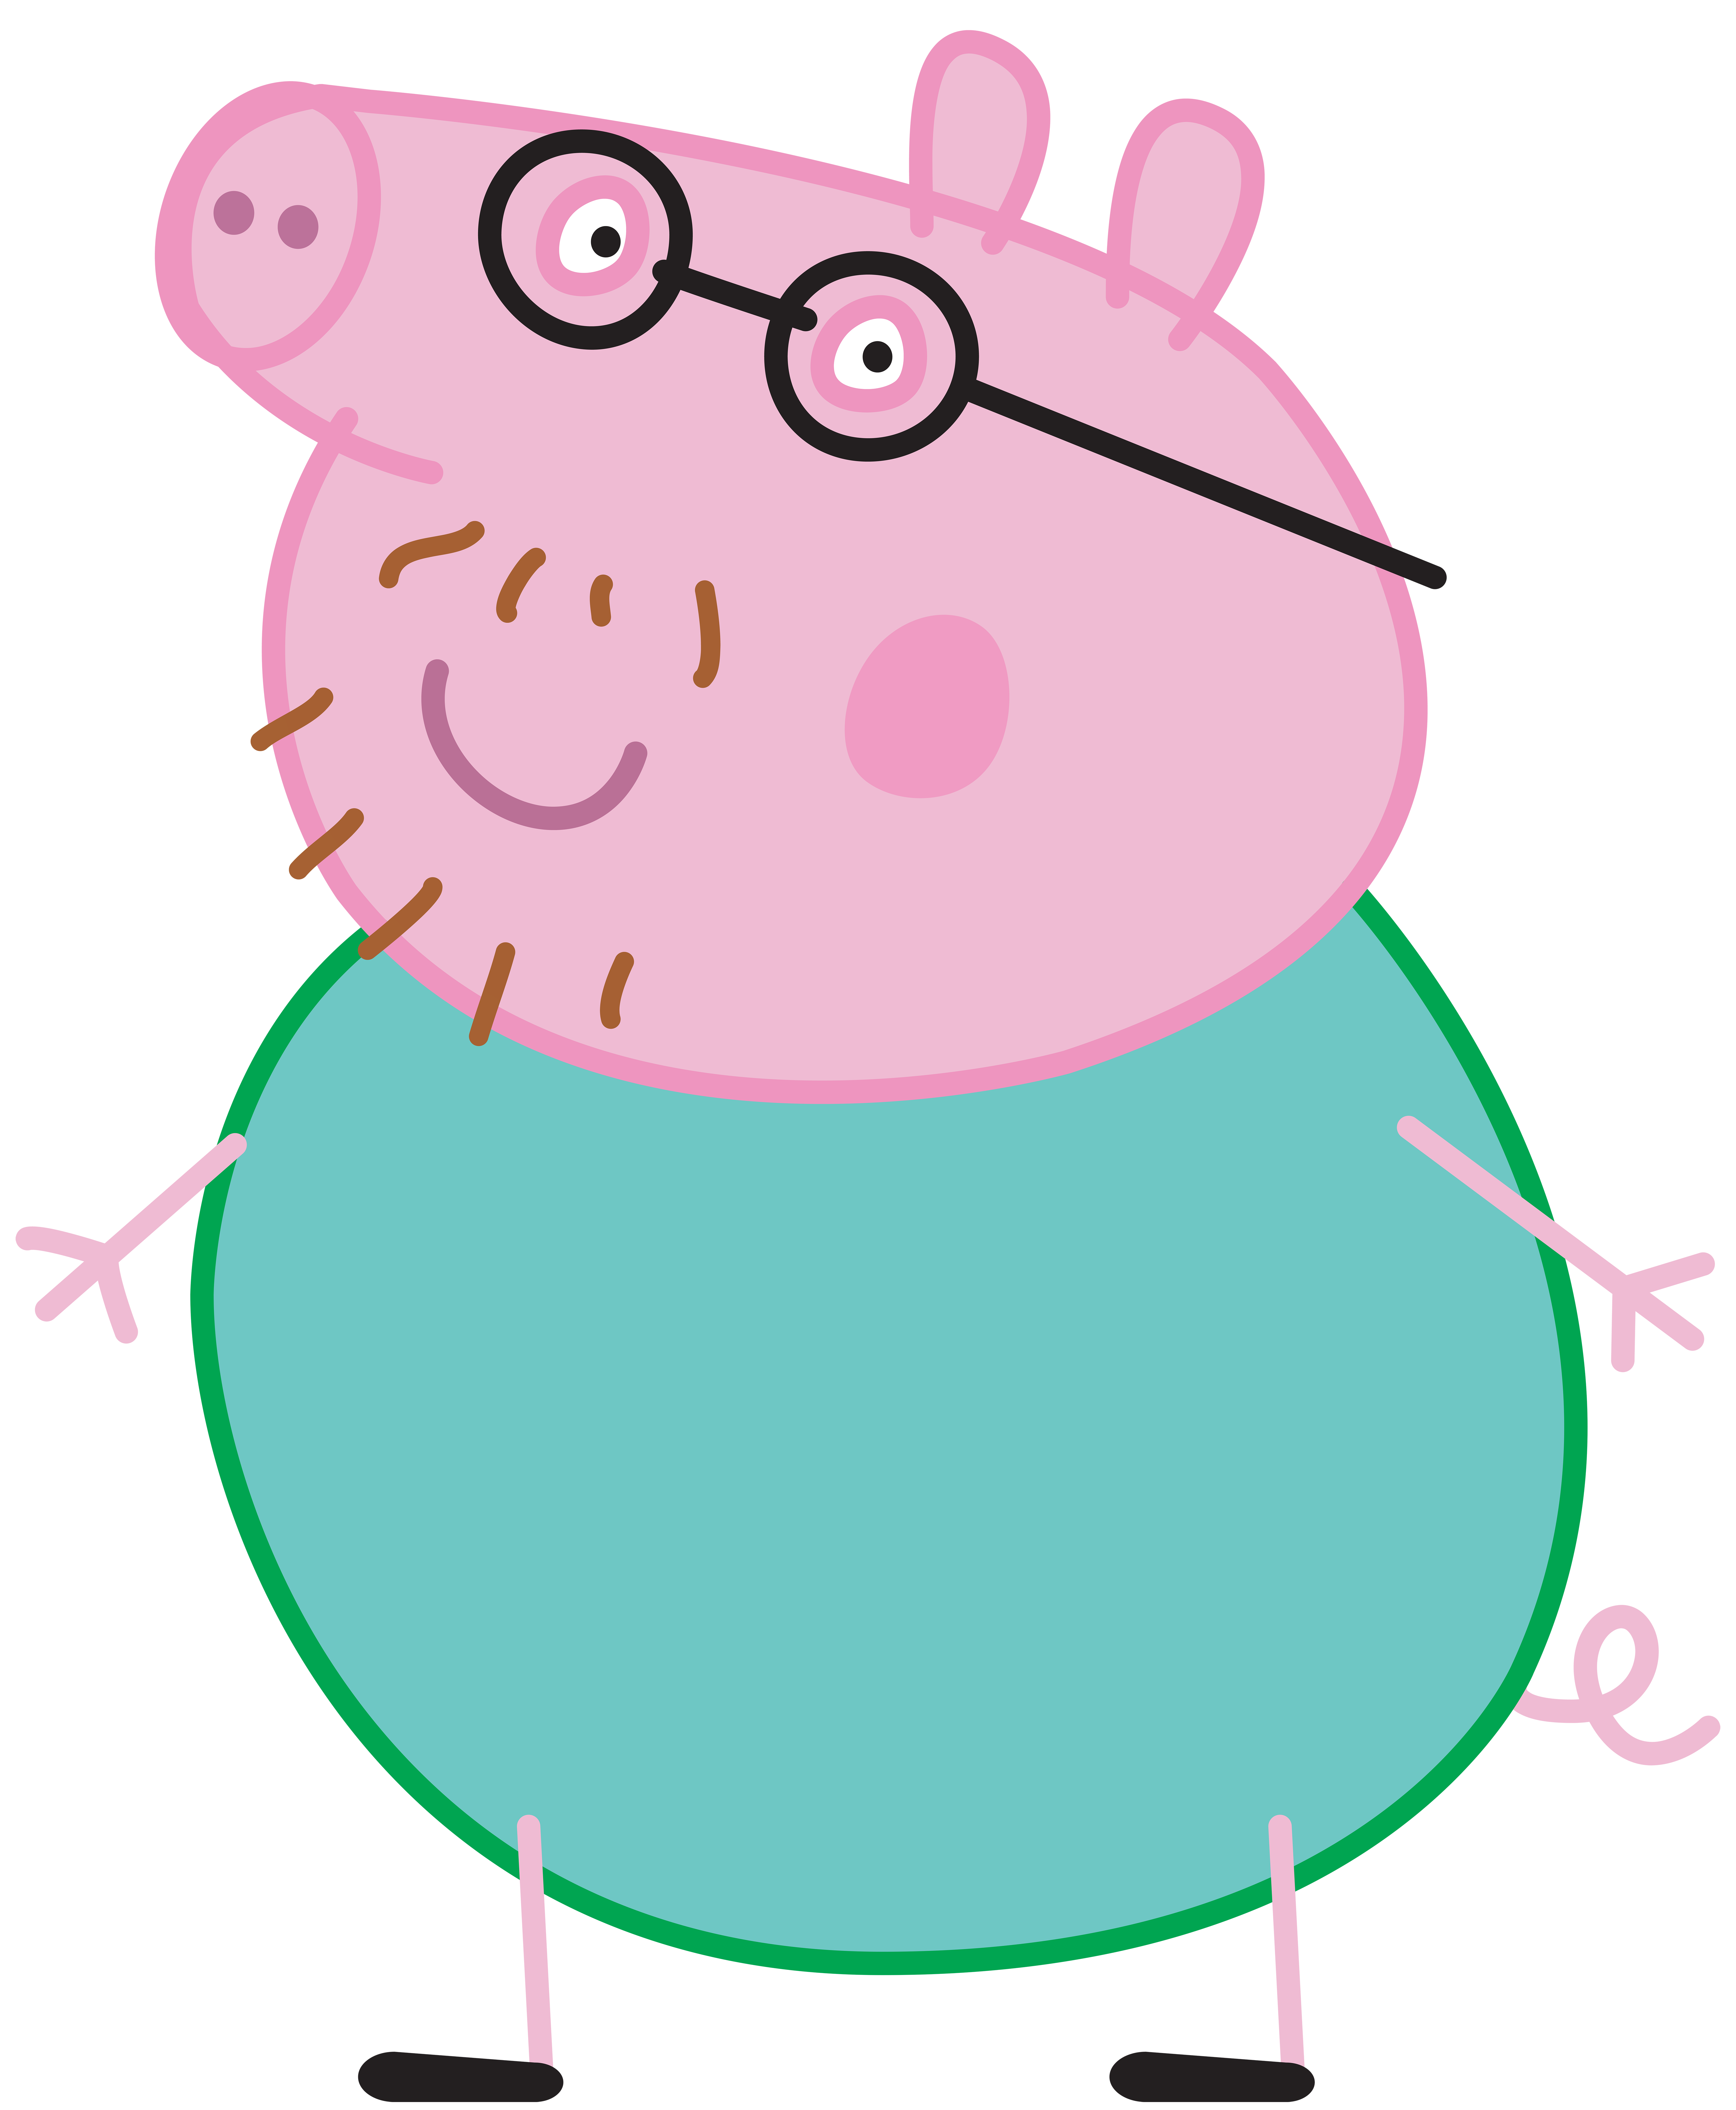 House clipart peppa pig. Daddy transparent png image